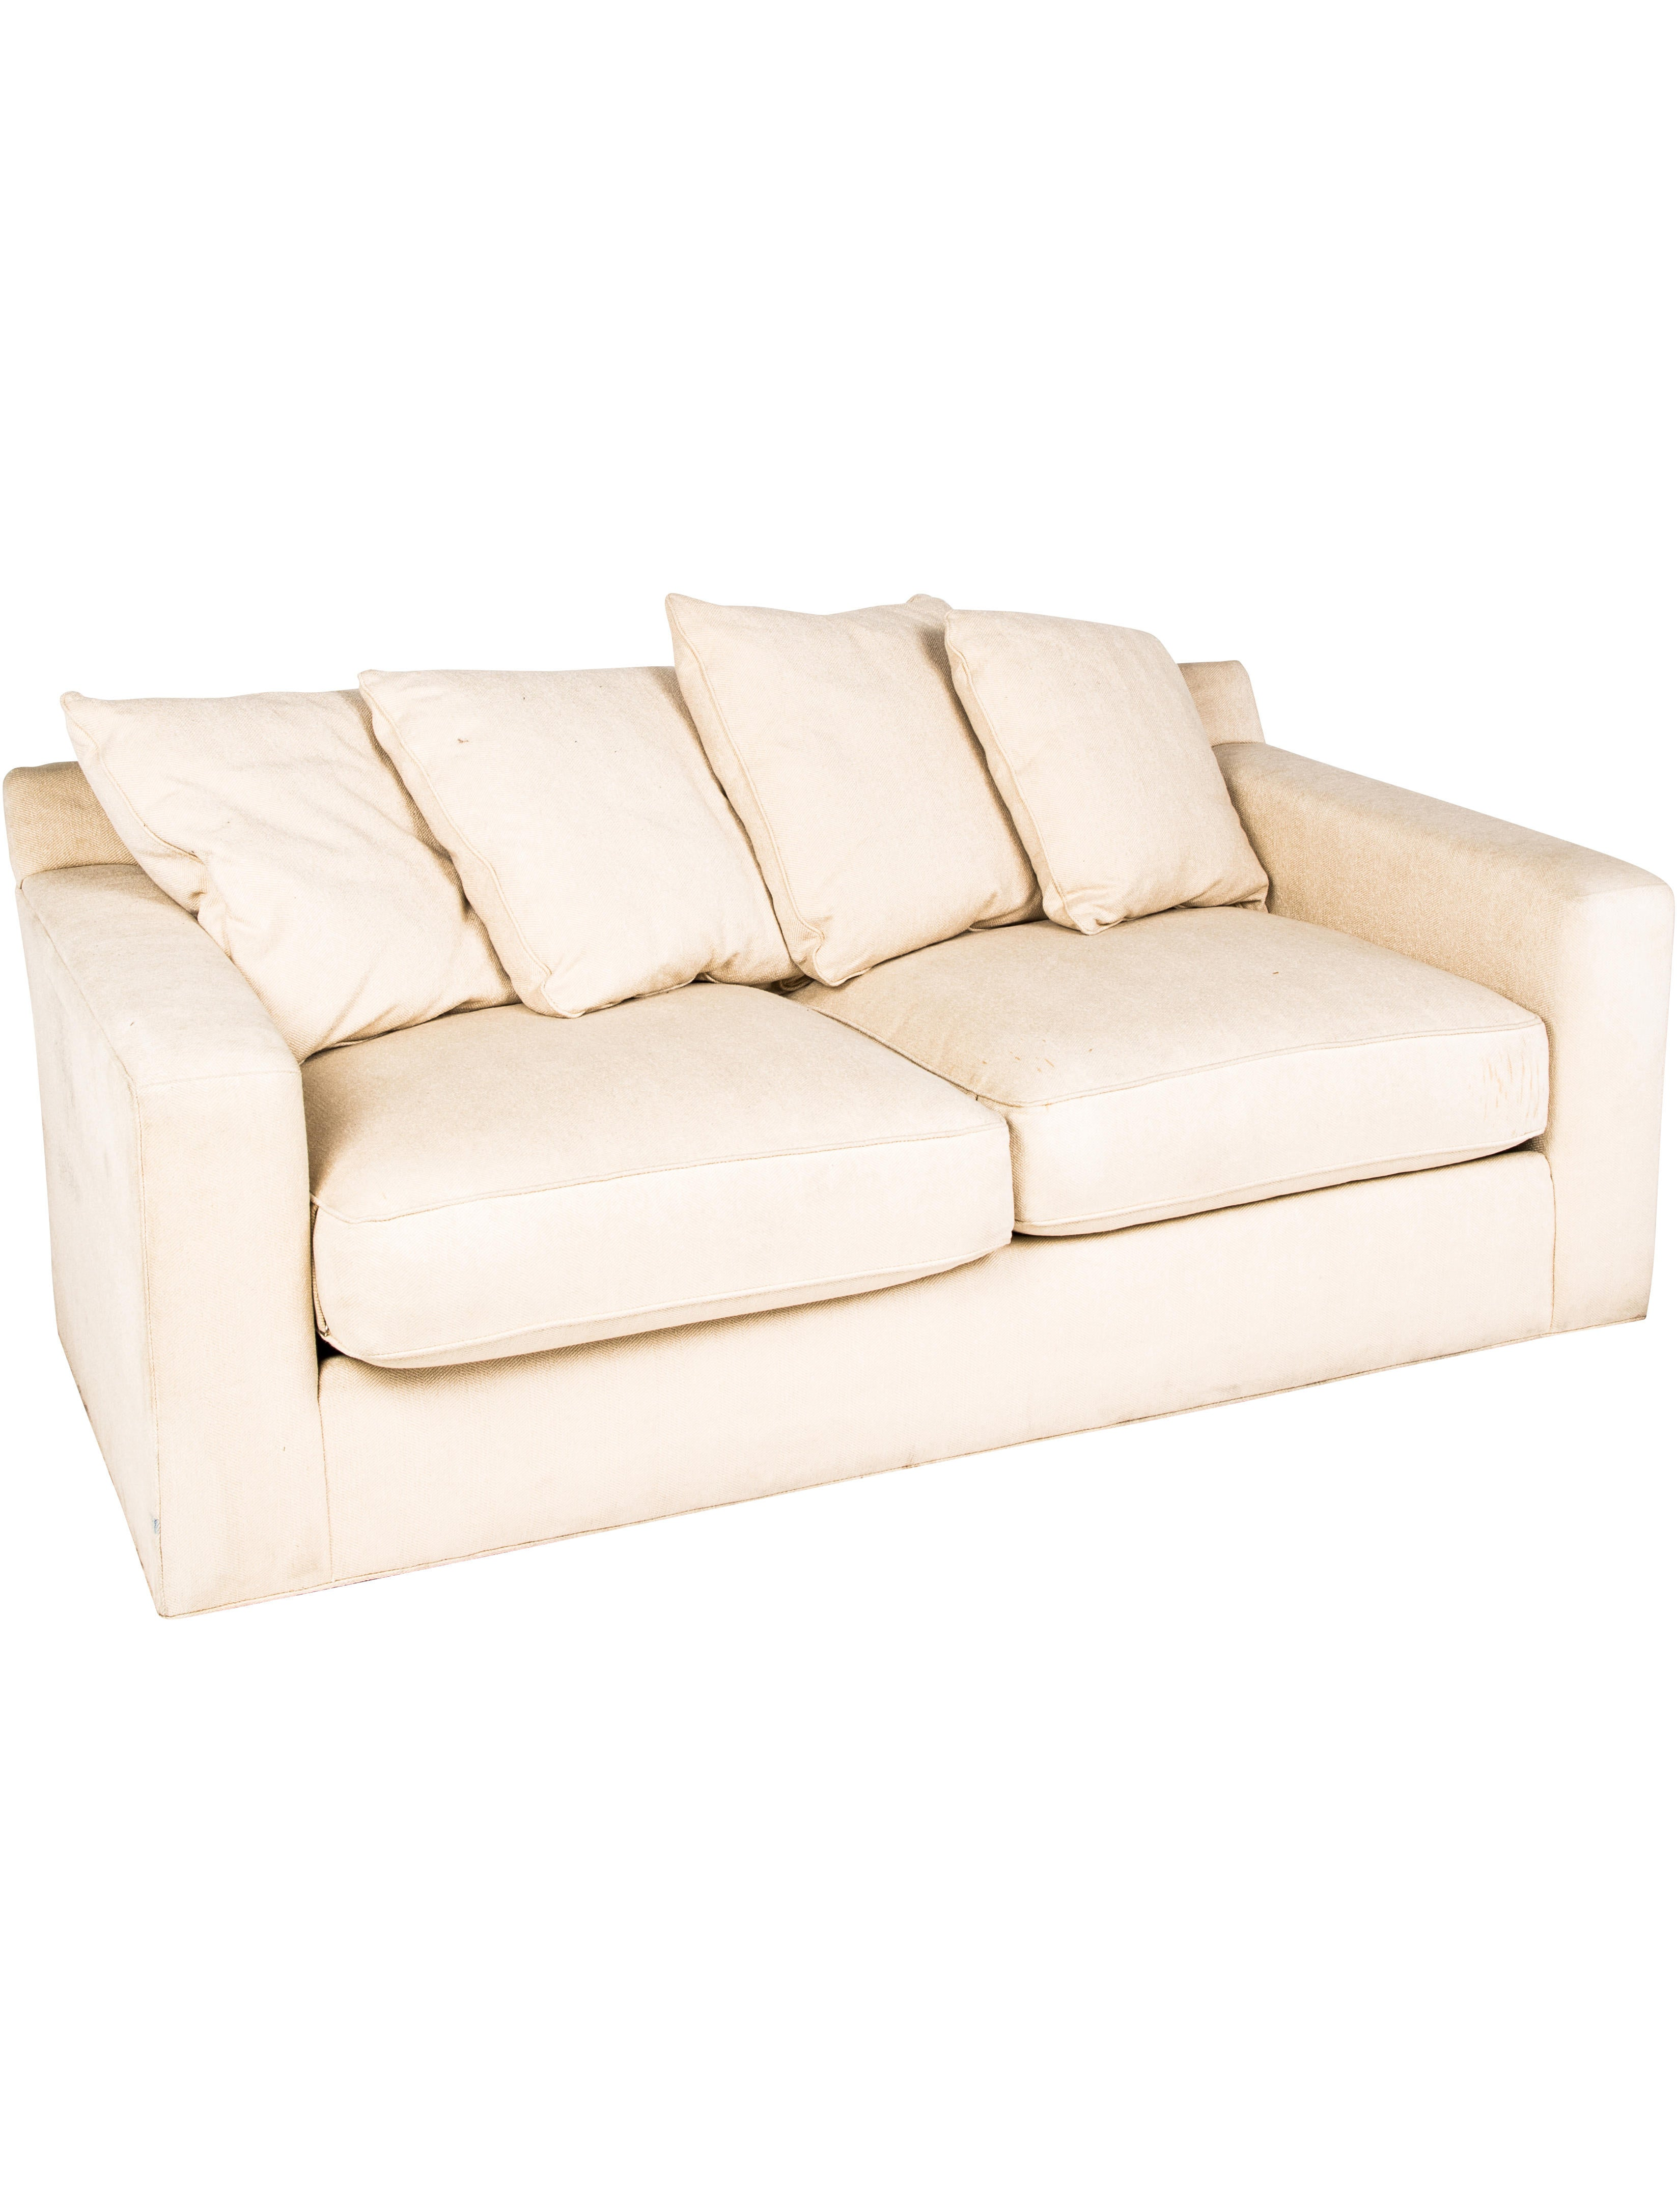 Hickory White Upholstered Sofa